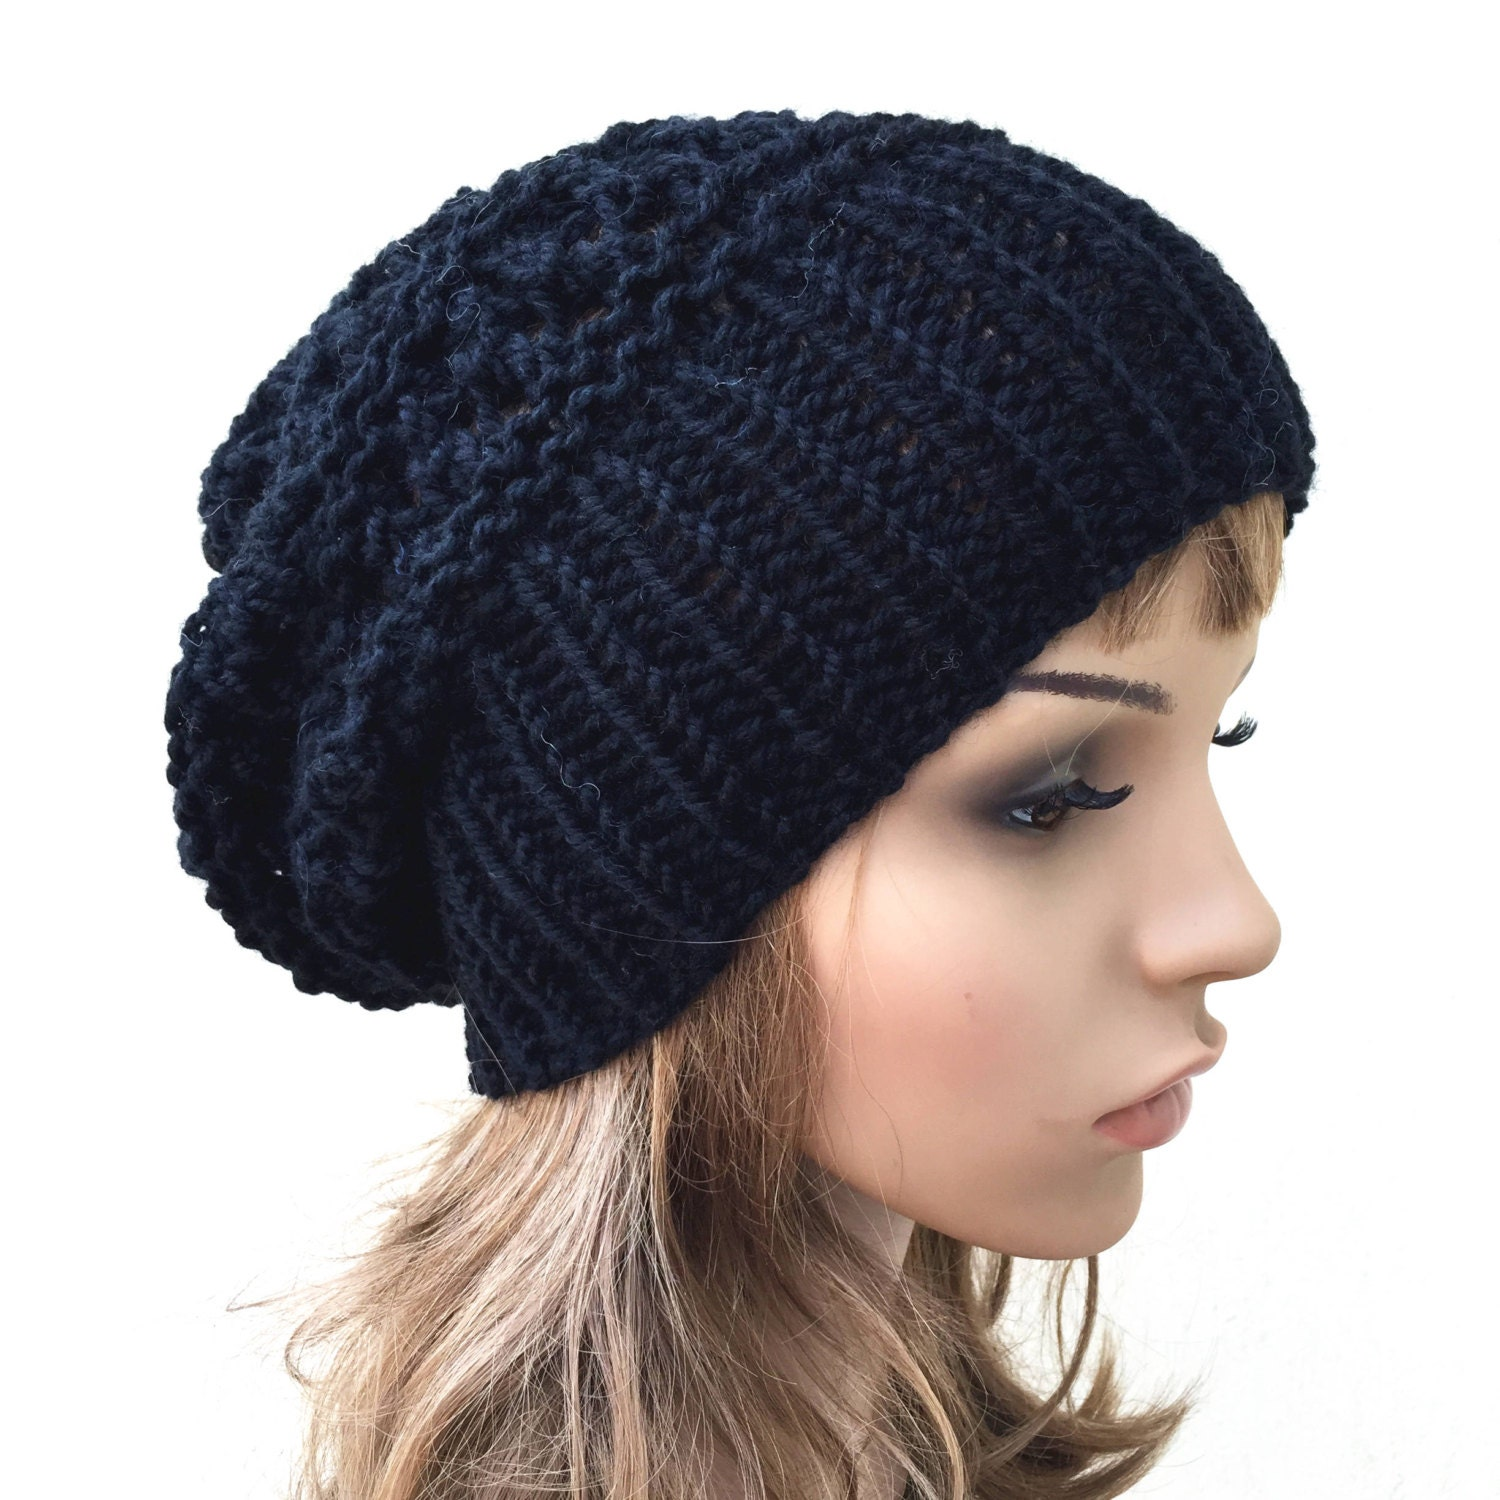 e9d64e8a8a7 Hand knit hat - Oversized Chunky Wool Hat slouchy hat in black. 1